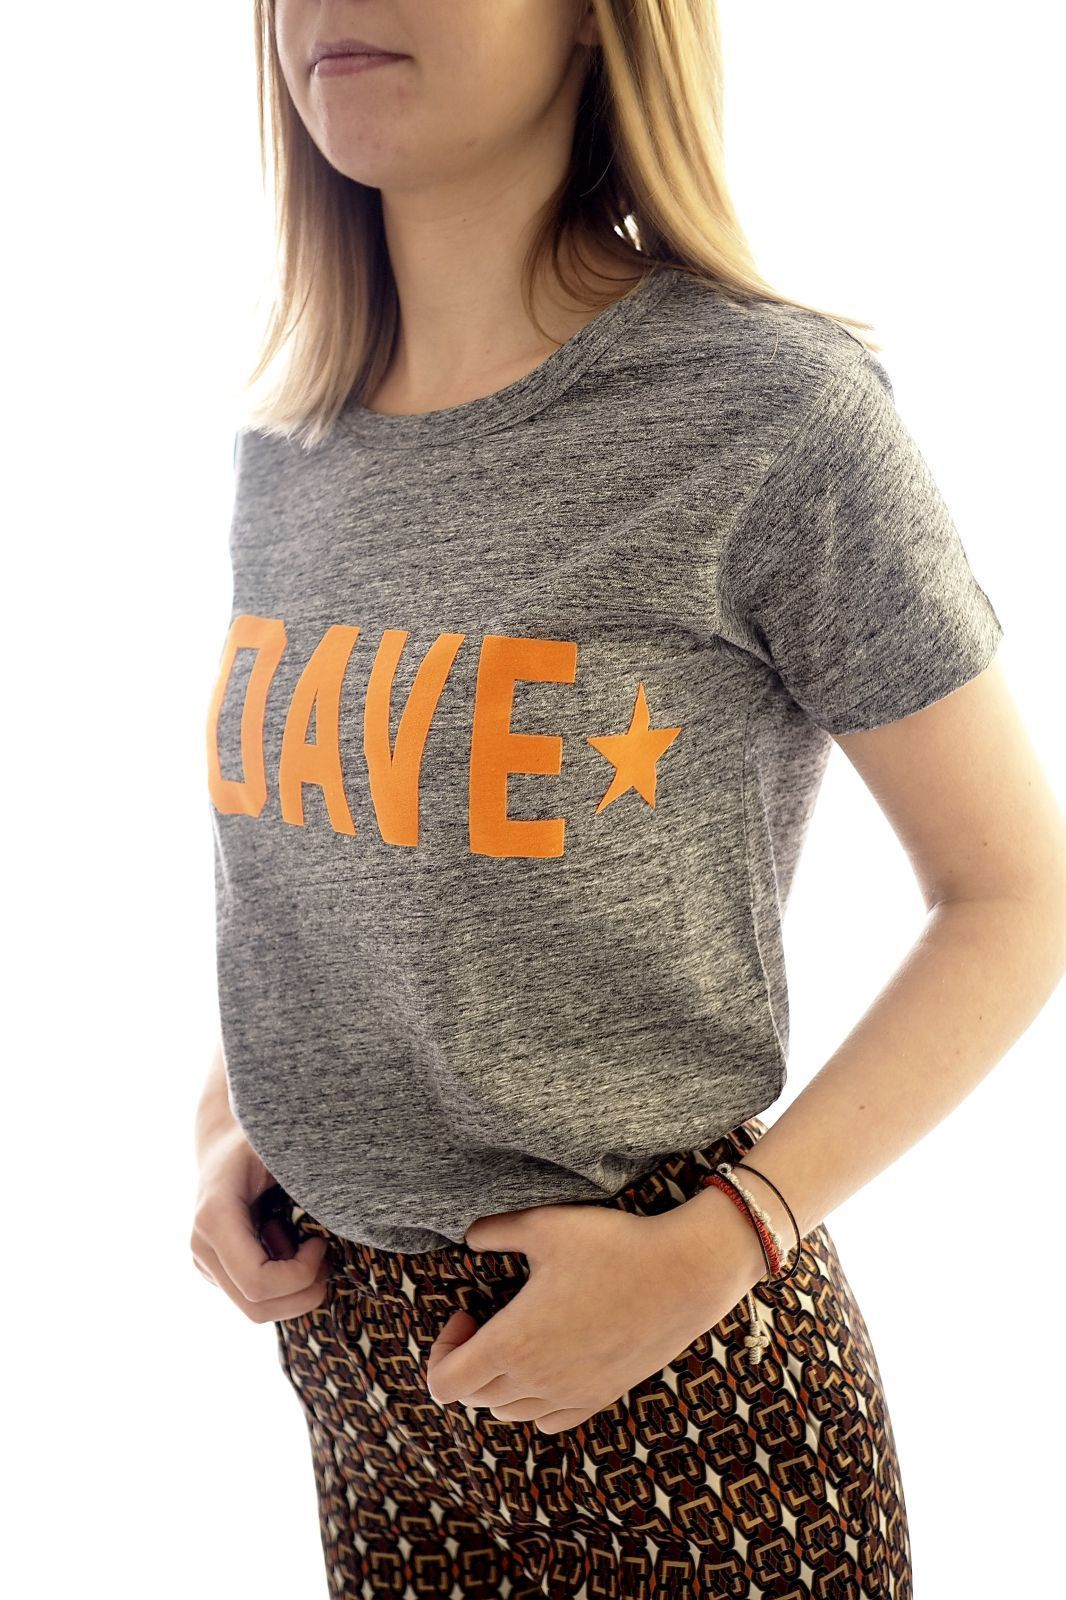 Jeff tee-Shirt Gris femmes (Jeff-Tshirt gris/orange fluo - TEE SOAVE Tshirt gris foncé/or) - Marine | Much more than shoes